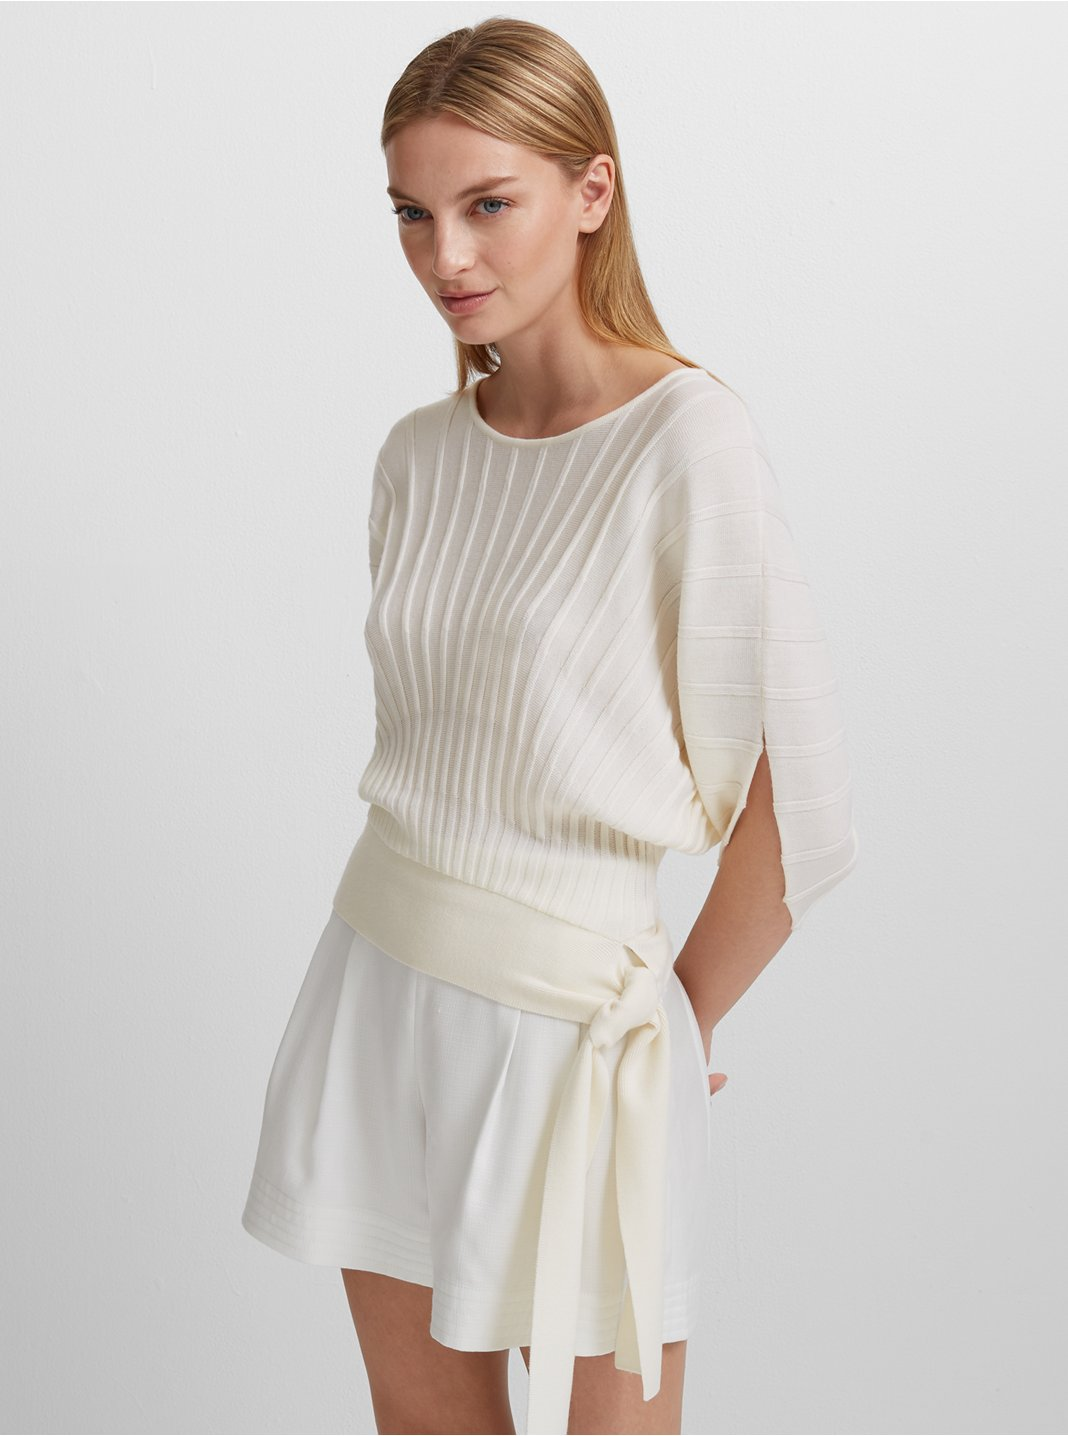 bb086fb2a02 Armadilla Merino Sweater · Armadilla Merino Sweater.  169.50. White · Black